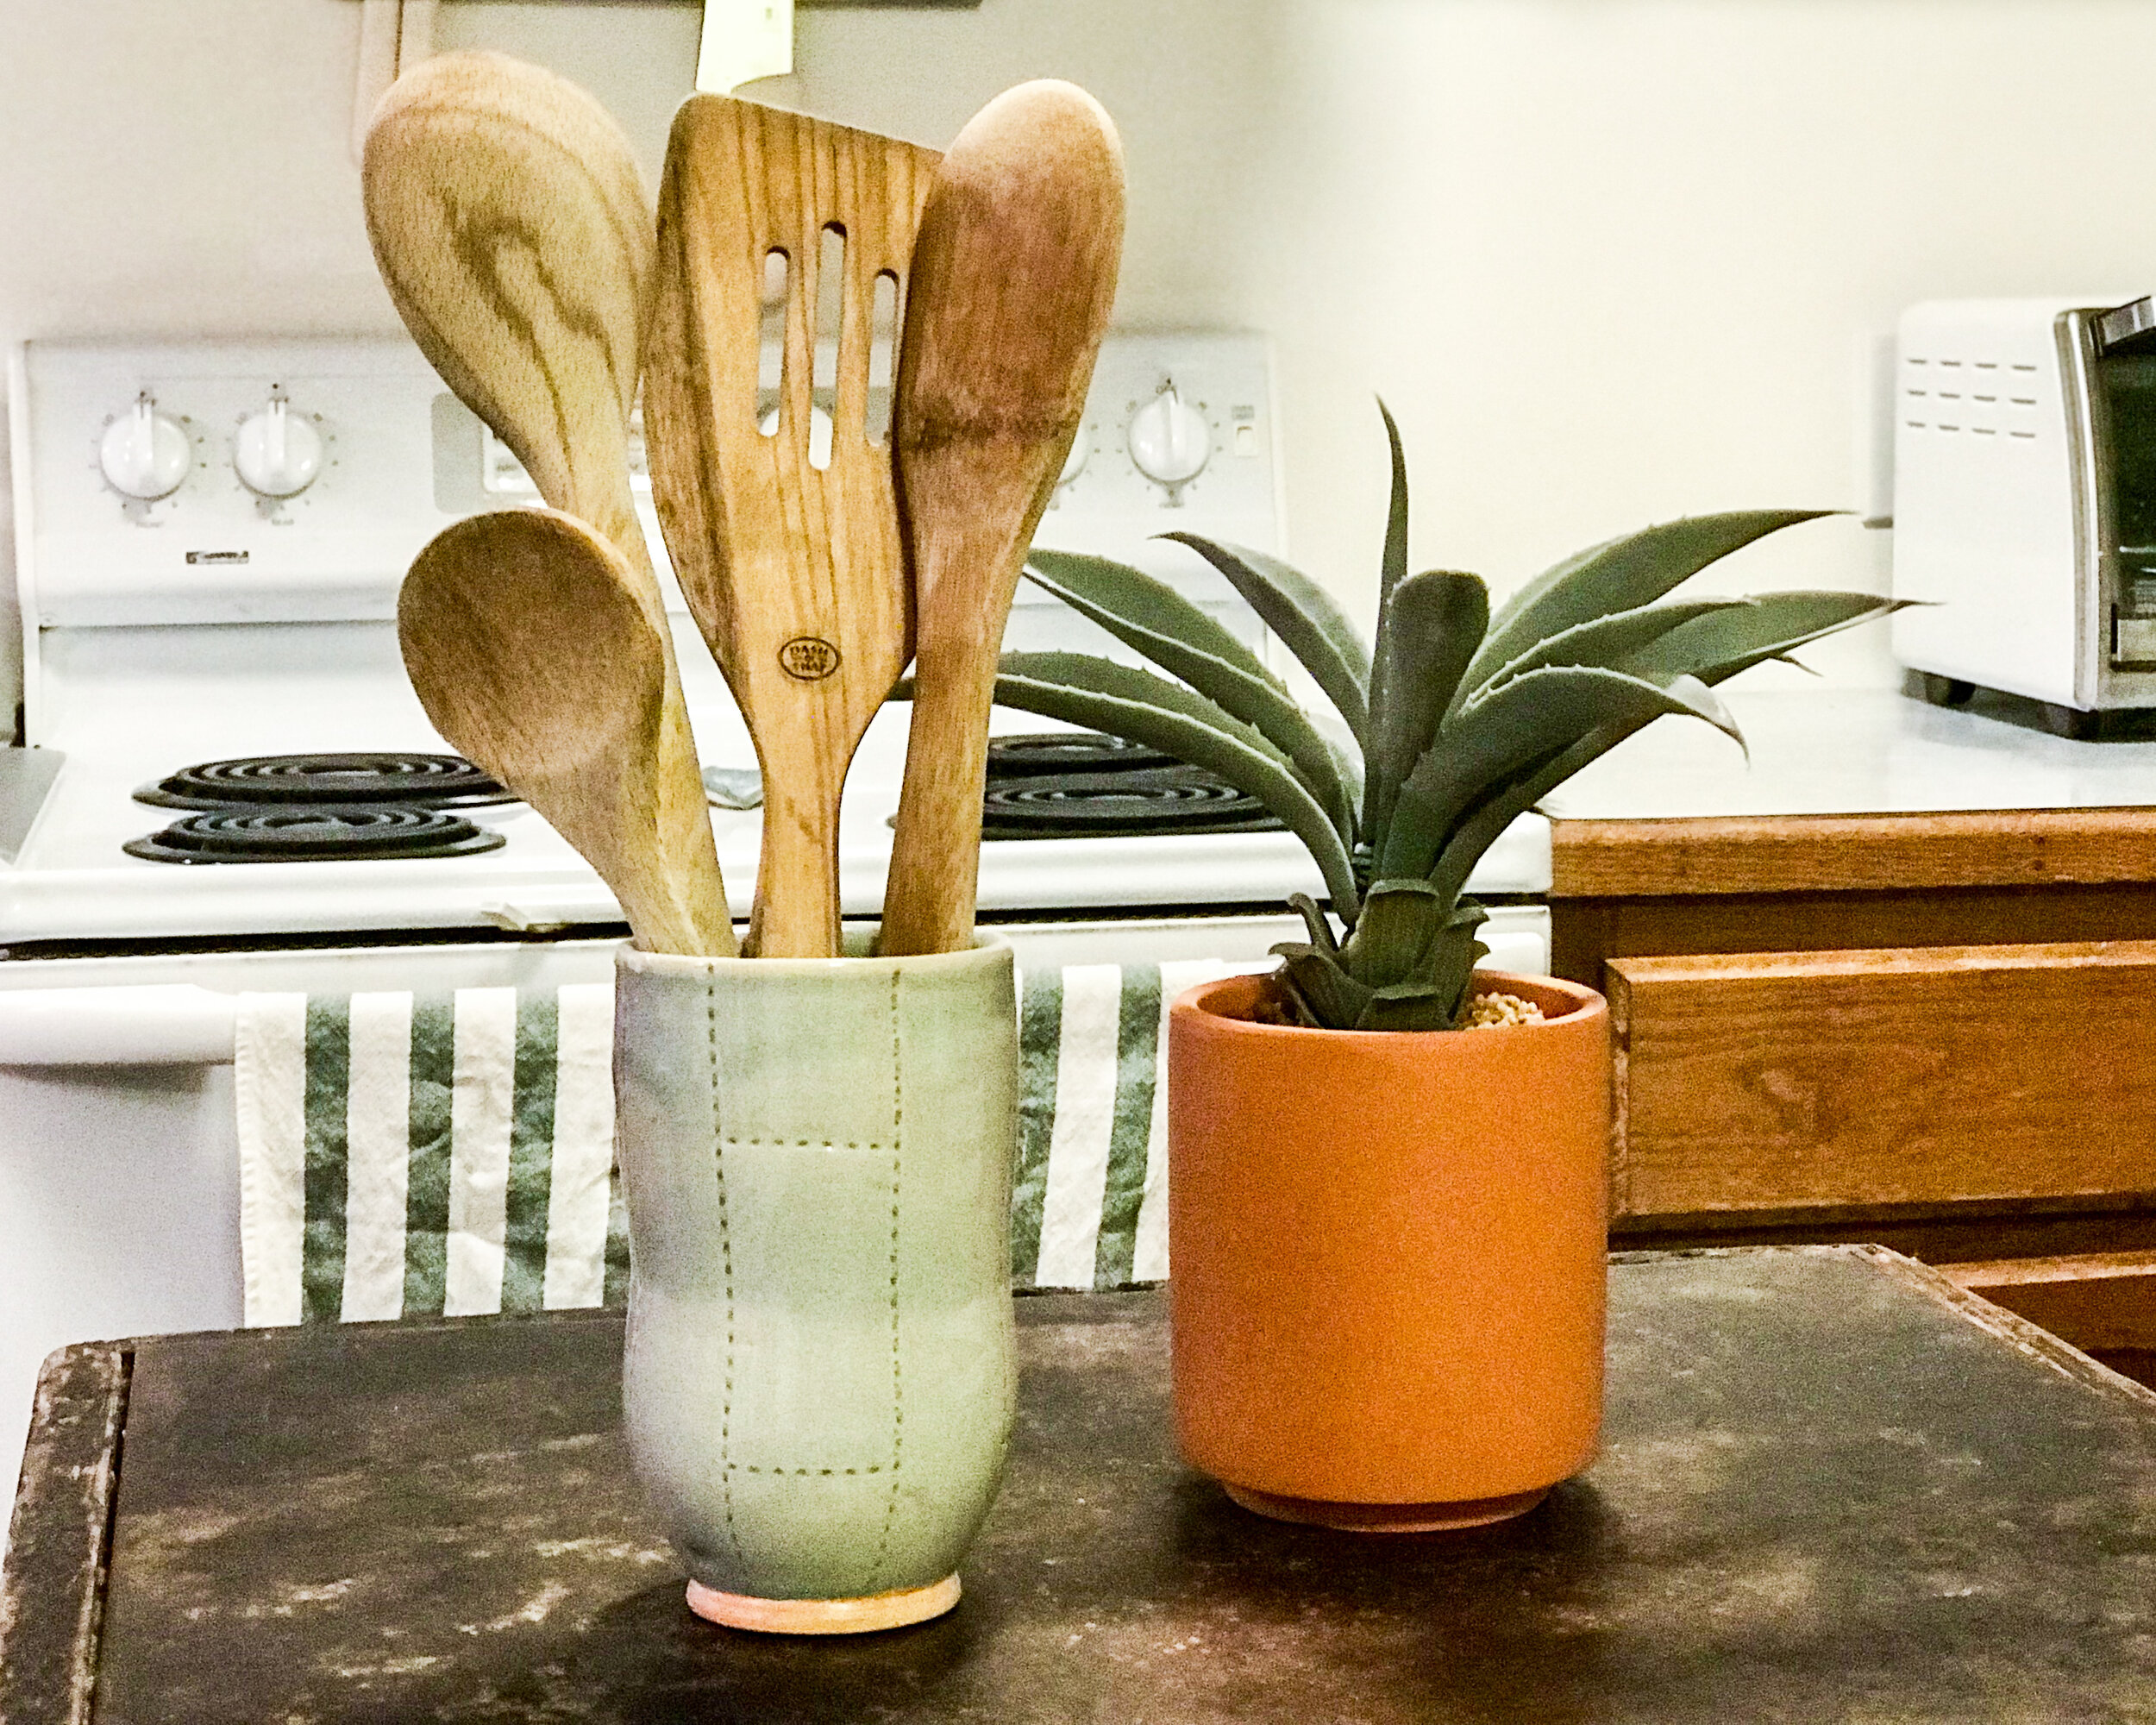 wooden vase with spoons